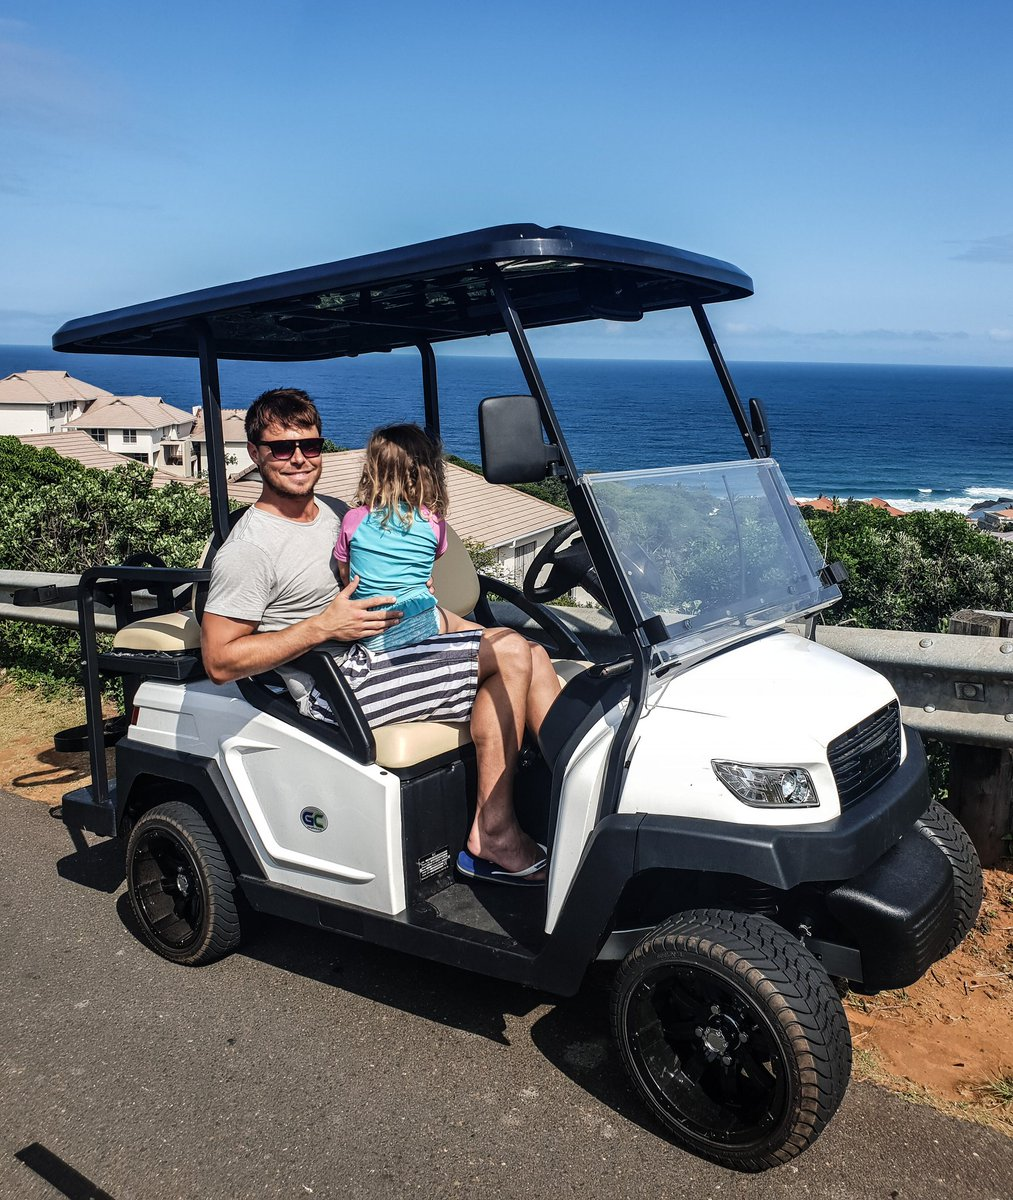 Enjoying the view with my girl... ❤ @GolfCarSA1 #golfcars #golfcarsa #ocean